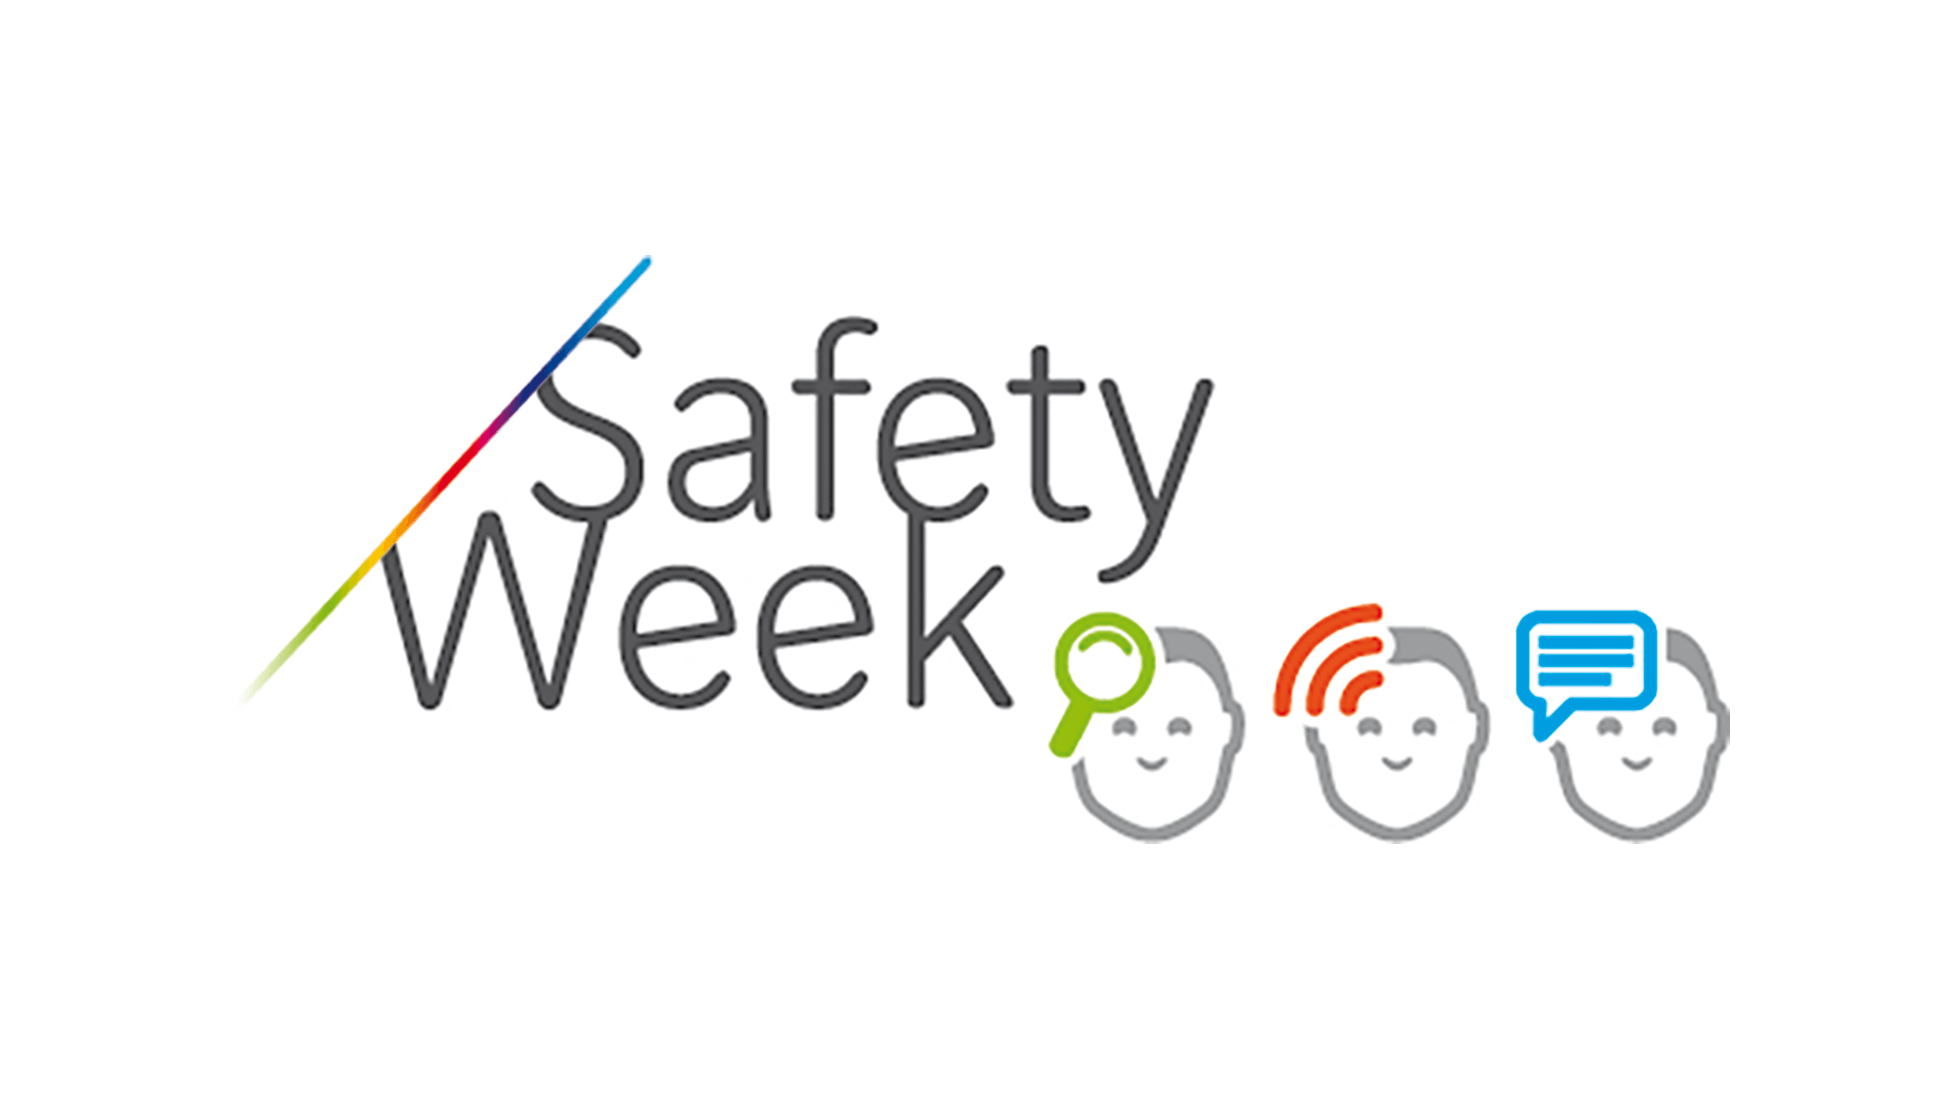 Safety week 2017